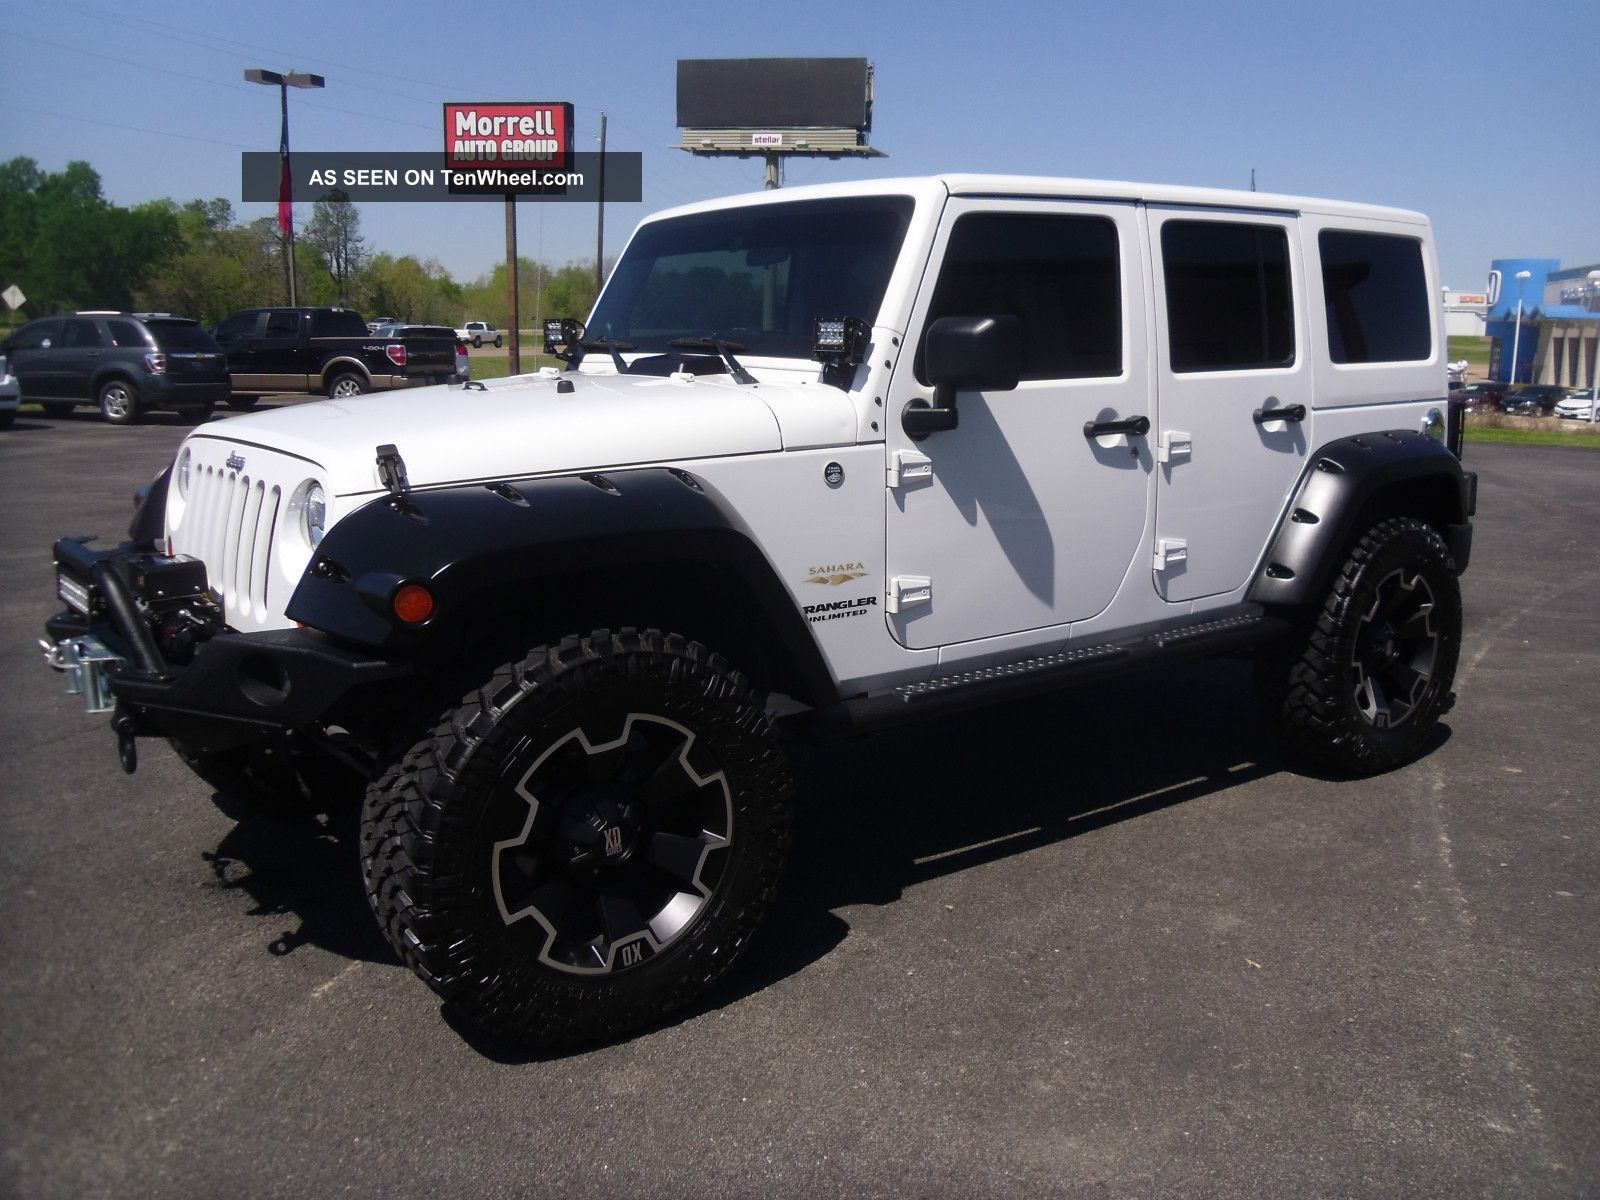 Lifted Jeep Wrangler Unlimited Jeep Wrangler Unlimite...